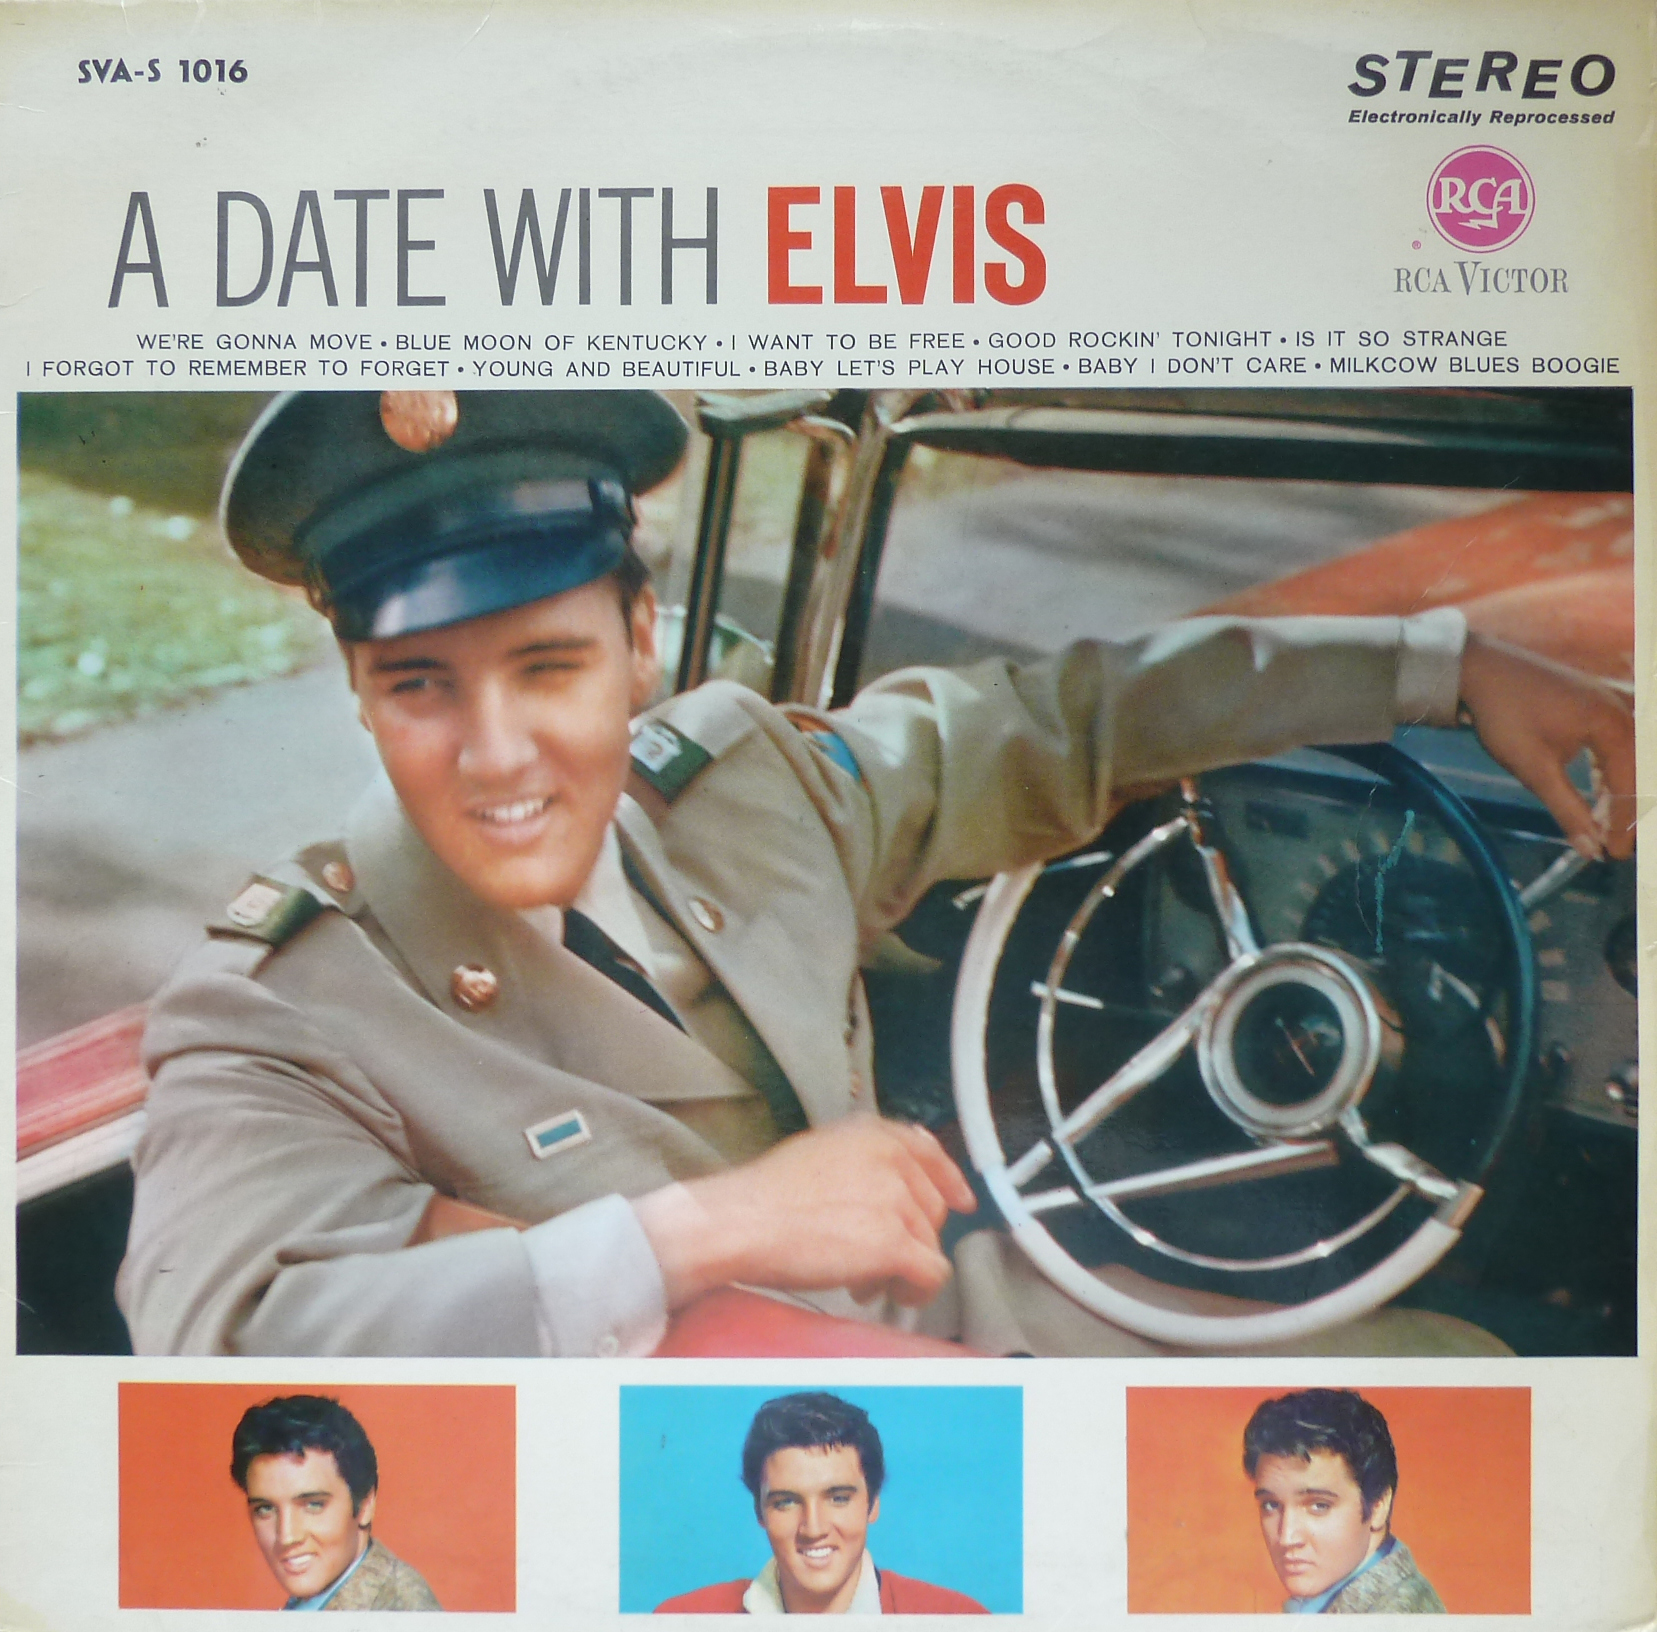 A DATE WITH ELVIS Adate70frontk5upw